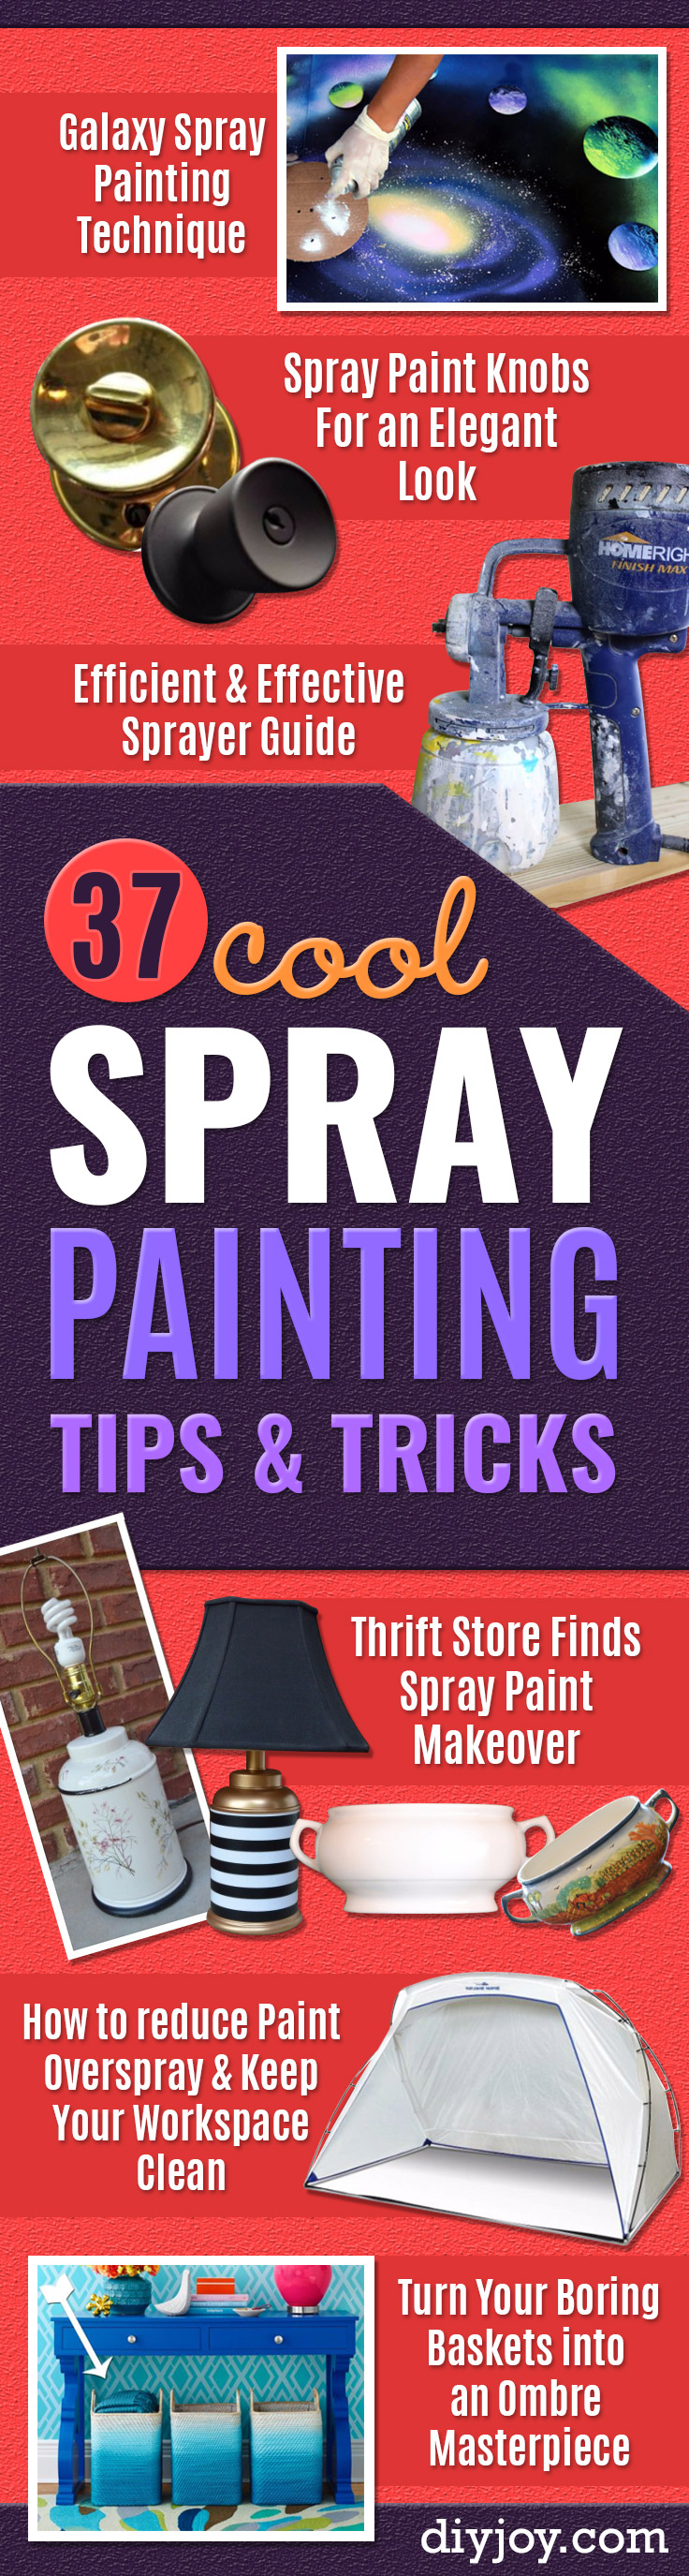 Spray Painting Tips and Tricks - Home Improvement Ideas and Tutorials for Spray Painting Furniture, House, Doors, Trim, Windows and Walls - Step by Step Tutorials and Best How To Instructions - DIY Projects and Crafts by DIY JOY